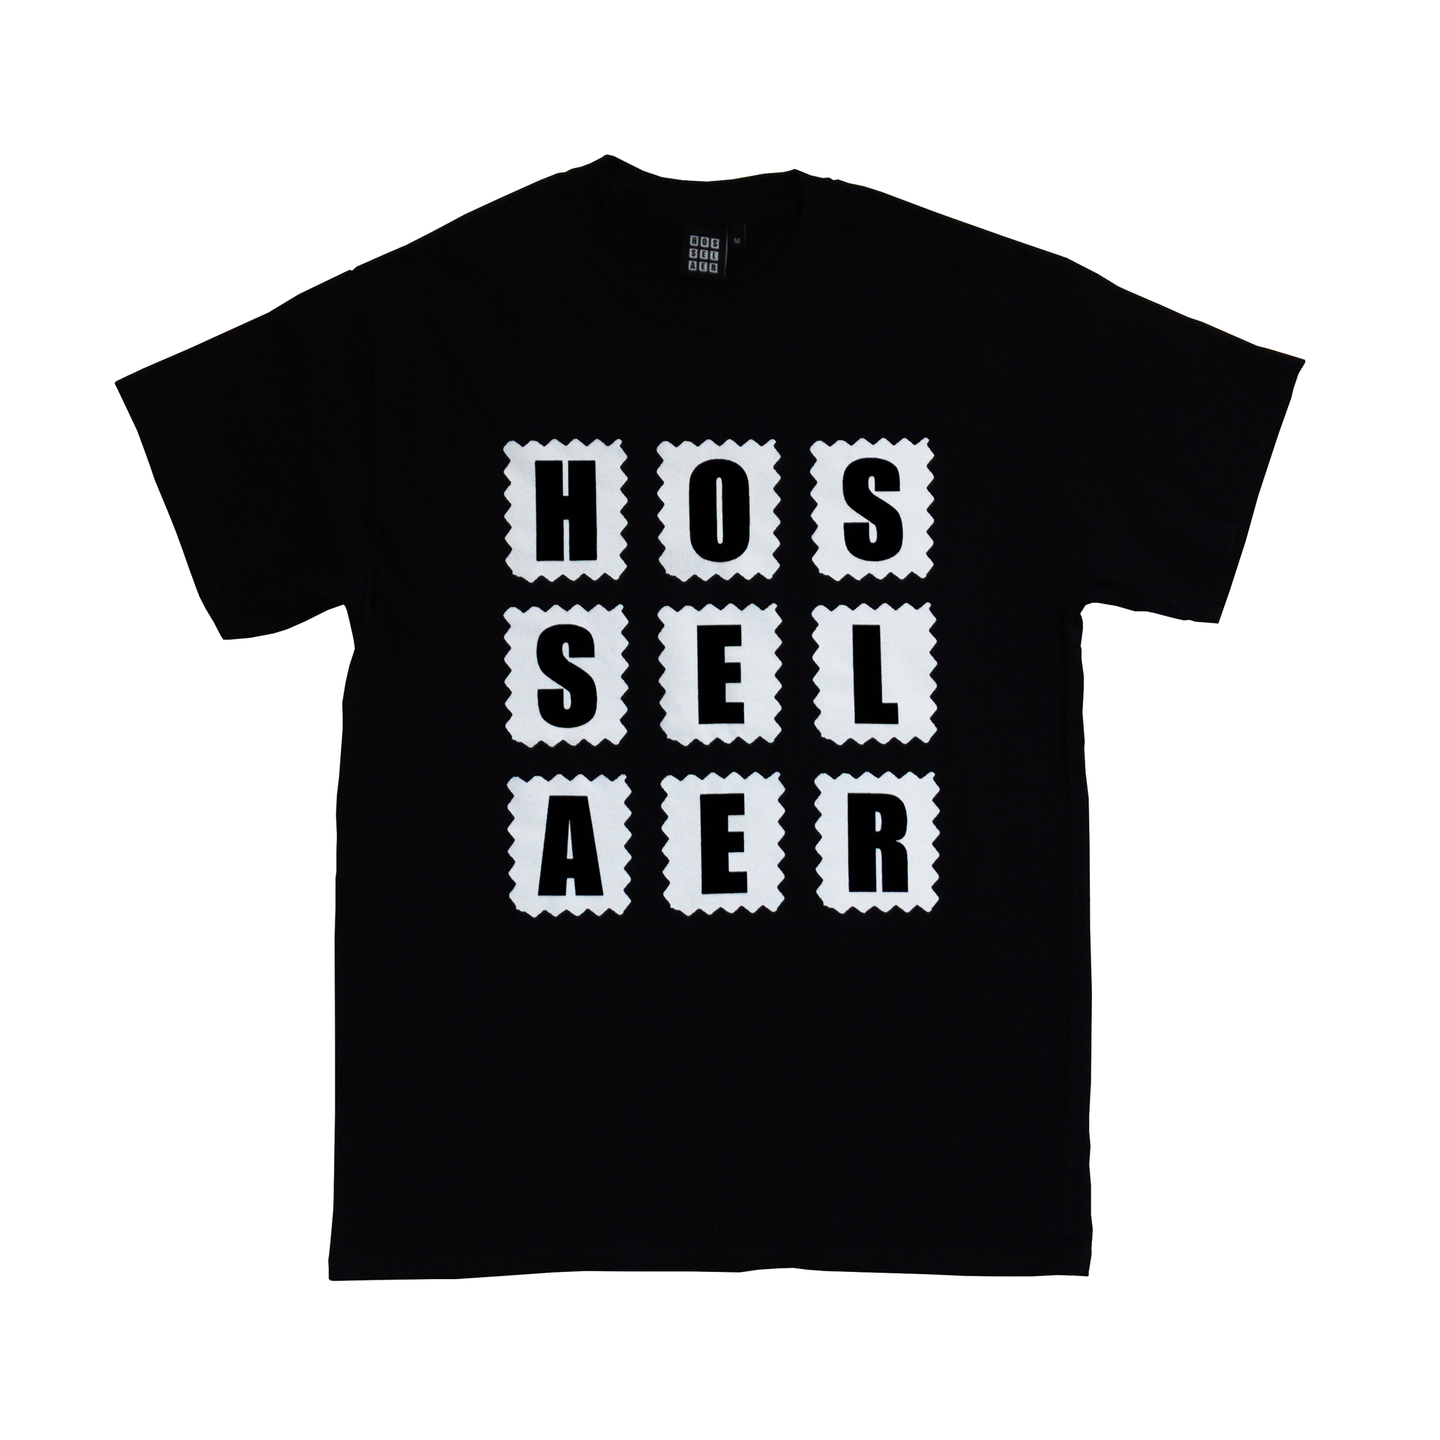 The original Hosselaer Box Logo printed on the Black Classic Fit 100% Cotton Gildan® Ultra  6 oz/yd²